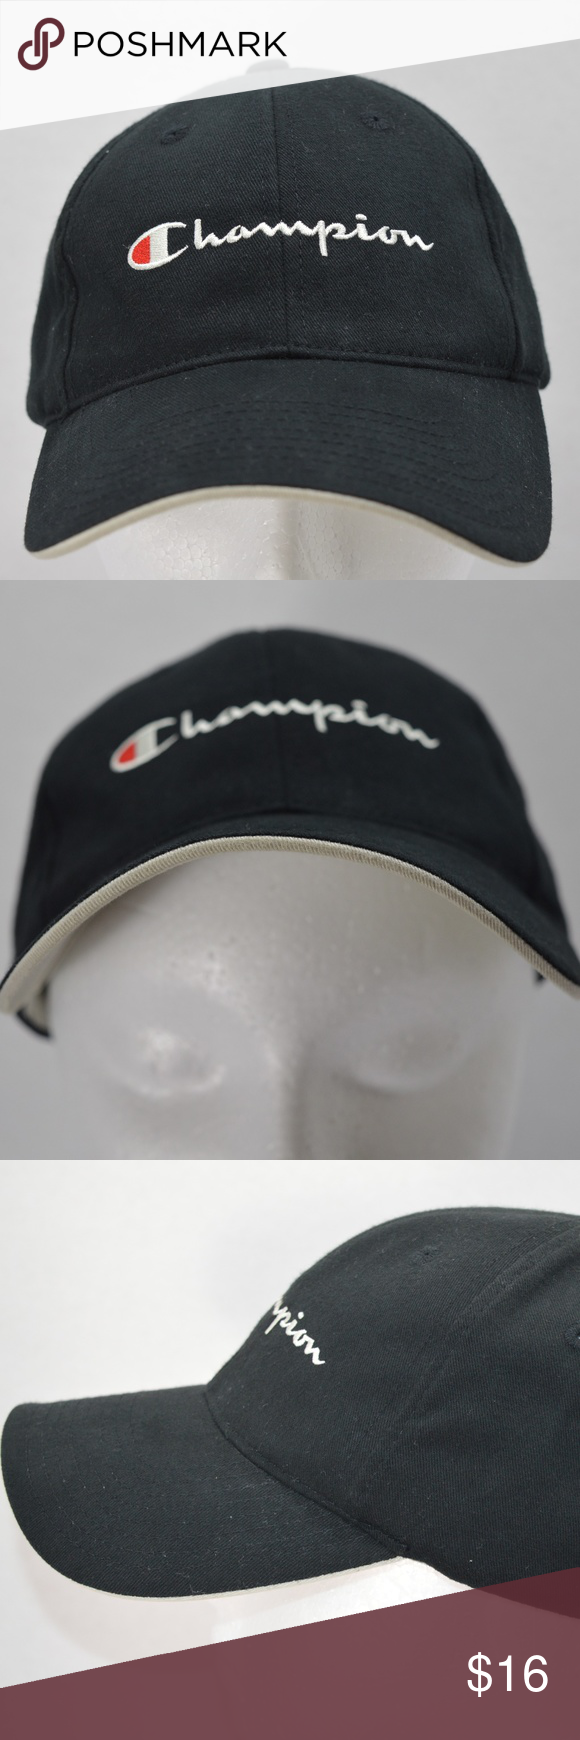 Champion Black Golf Baseball Running Tennis Hat Embroidery on front and  back 0e1ce9b3102